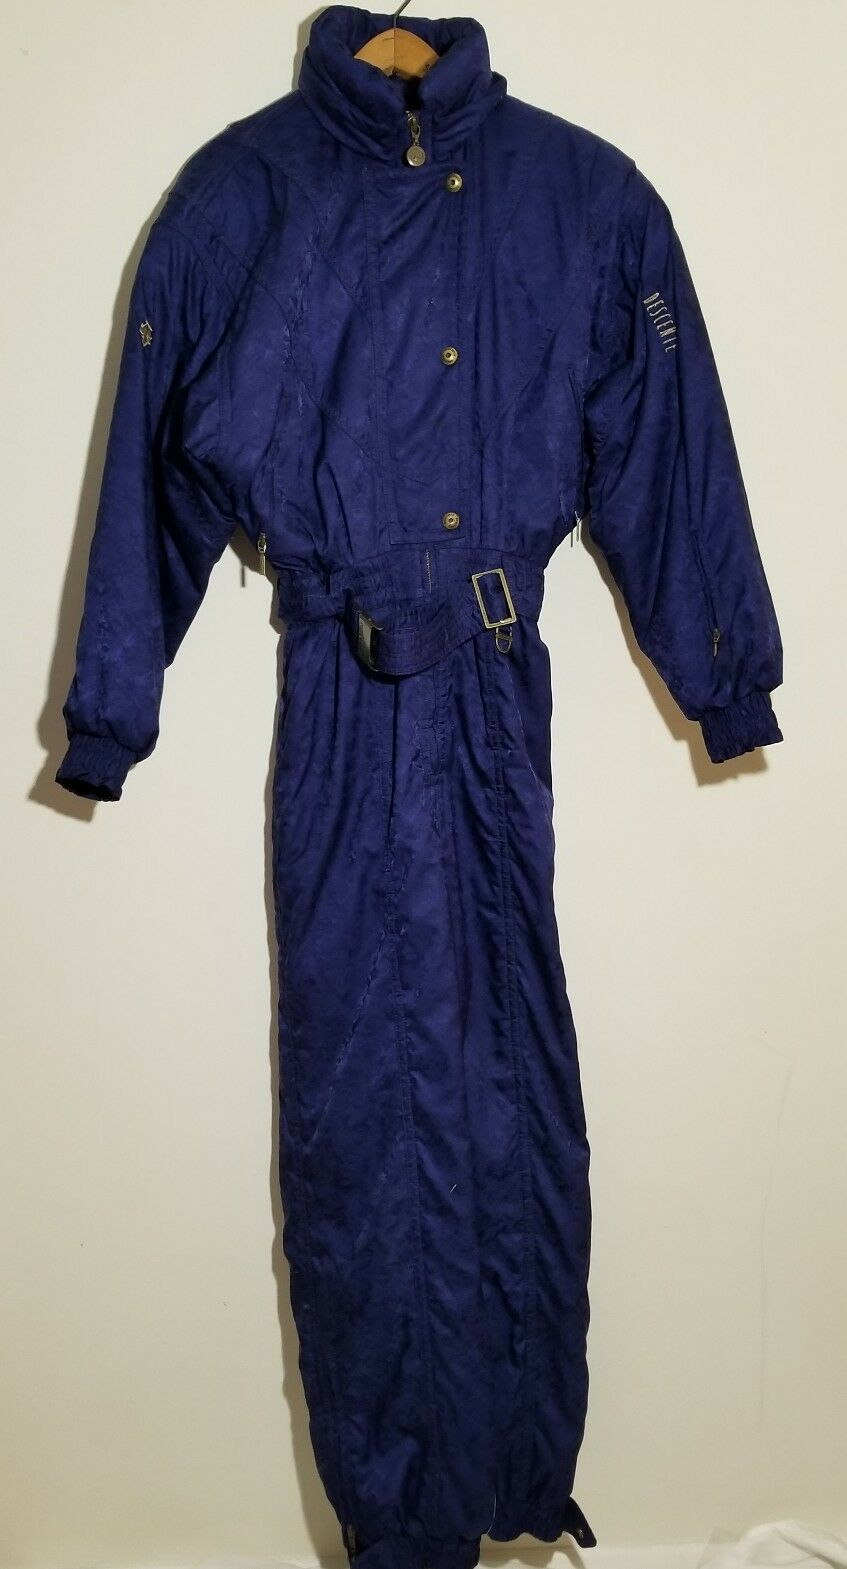 Vintage DESCENTE bluee Women's 10 One Piece Snow SKI Suit BIB Coat Snowsuit